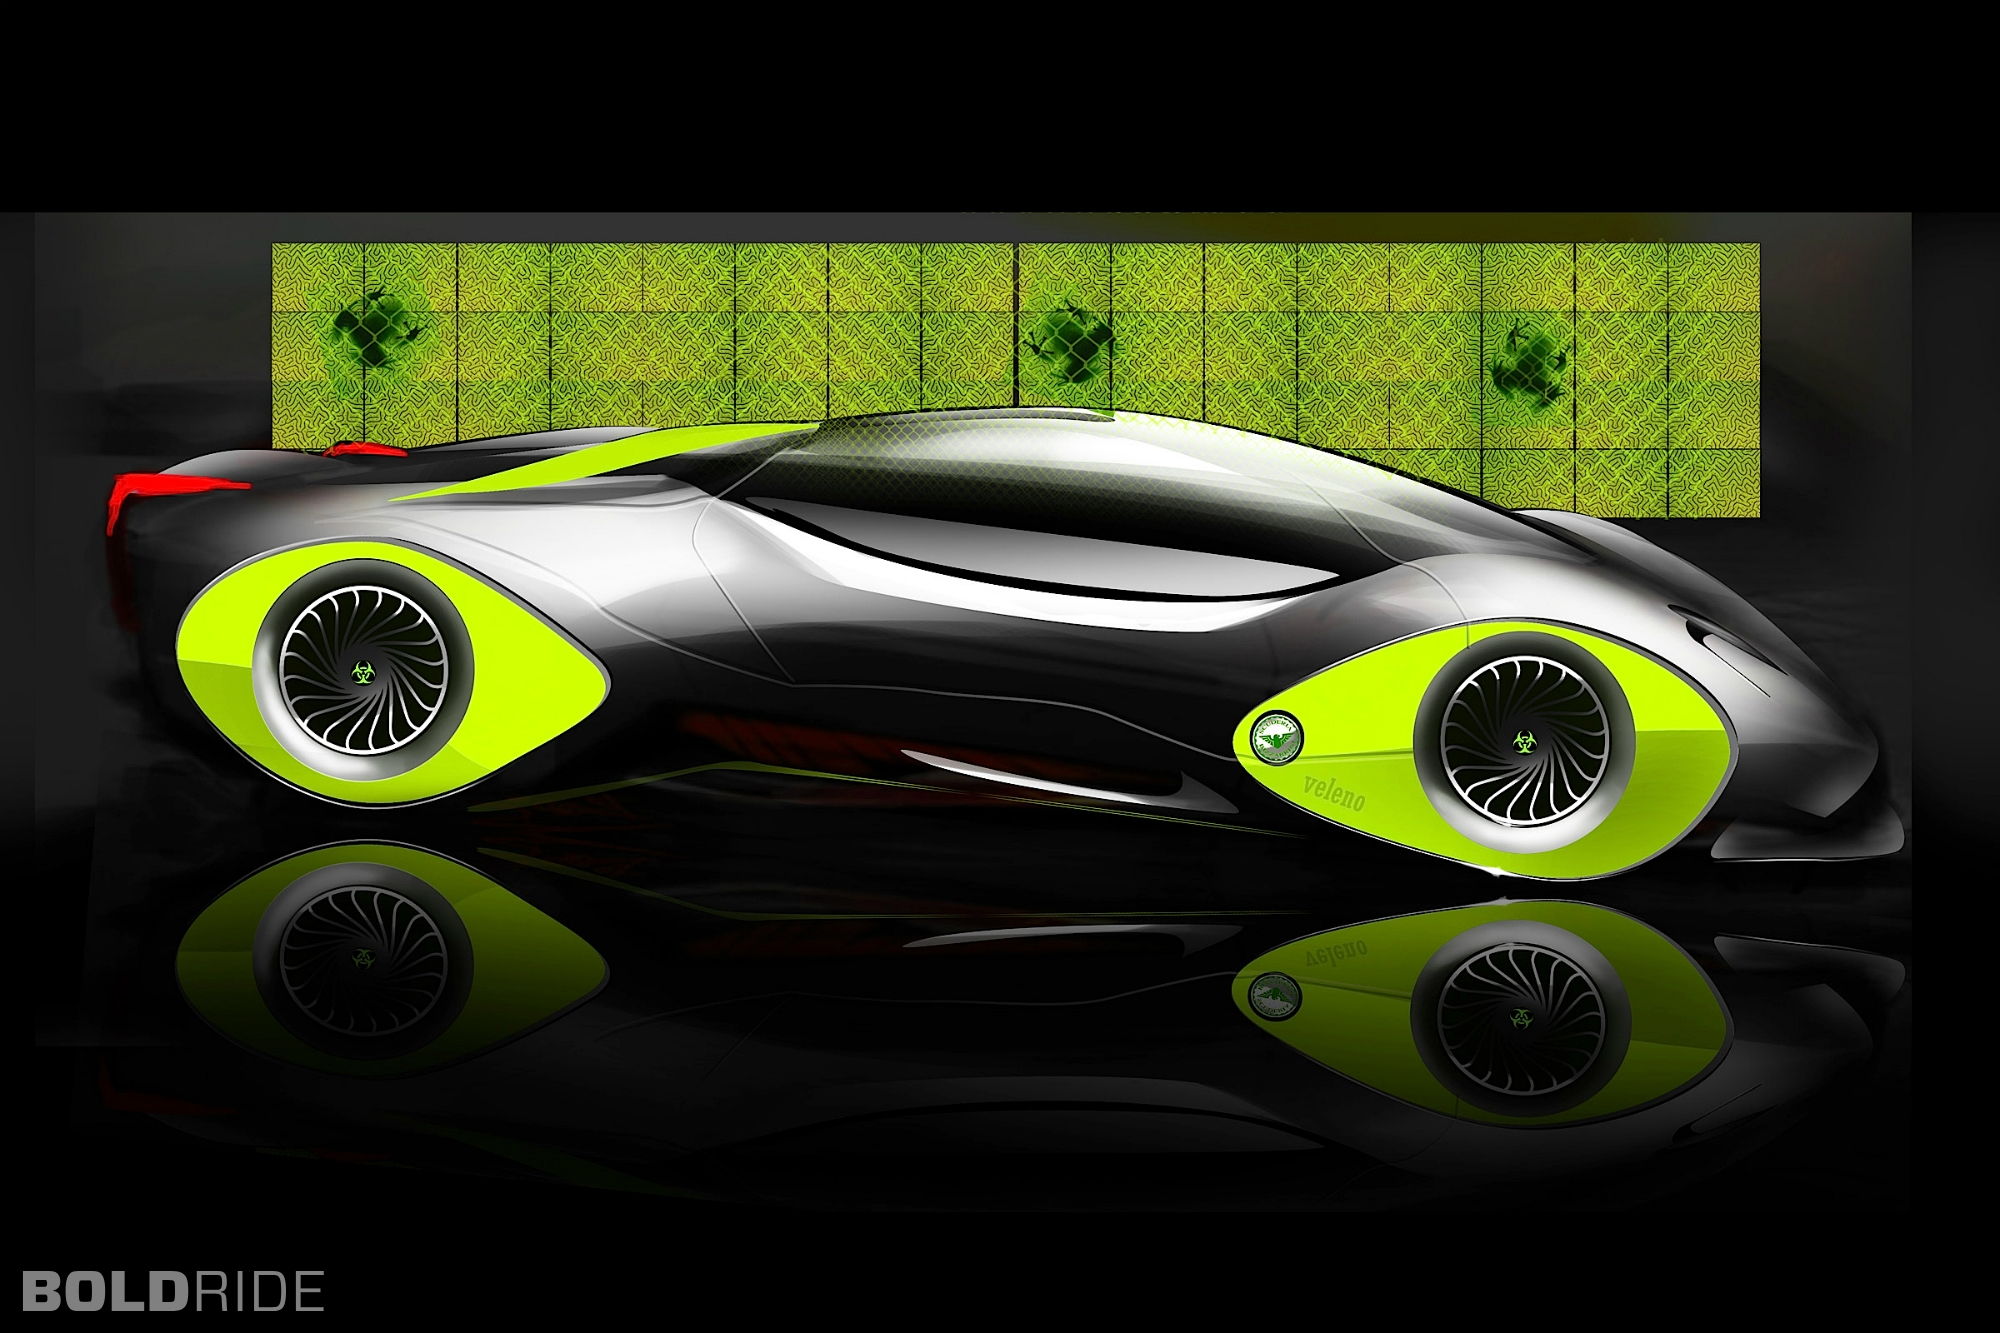 2030 Bizzarrini Veleno Concept By Borys Dabrowski Supercar